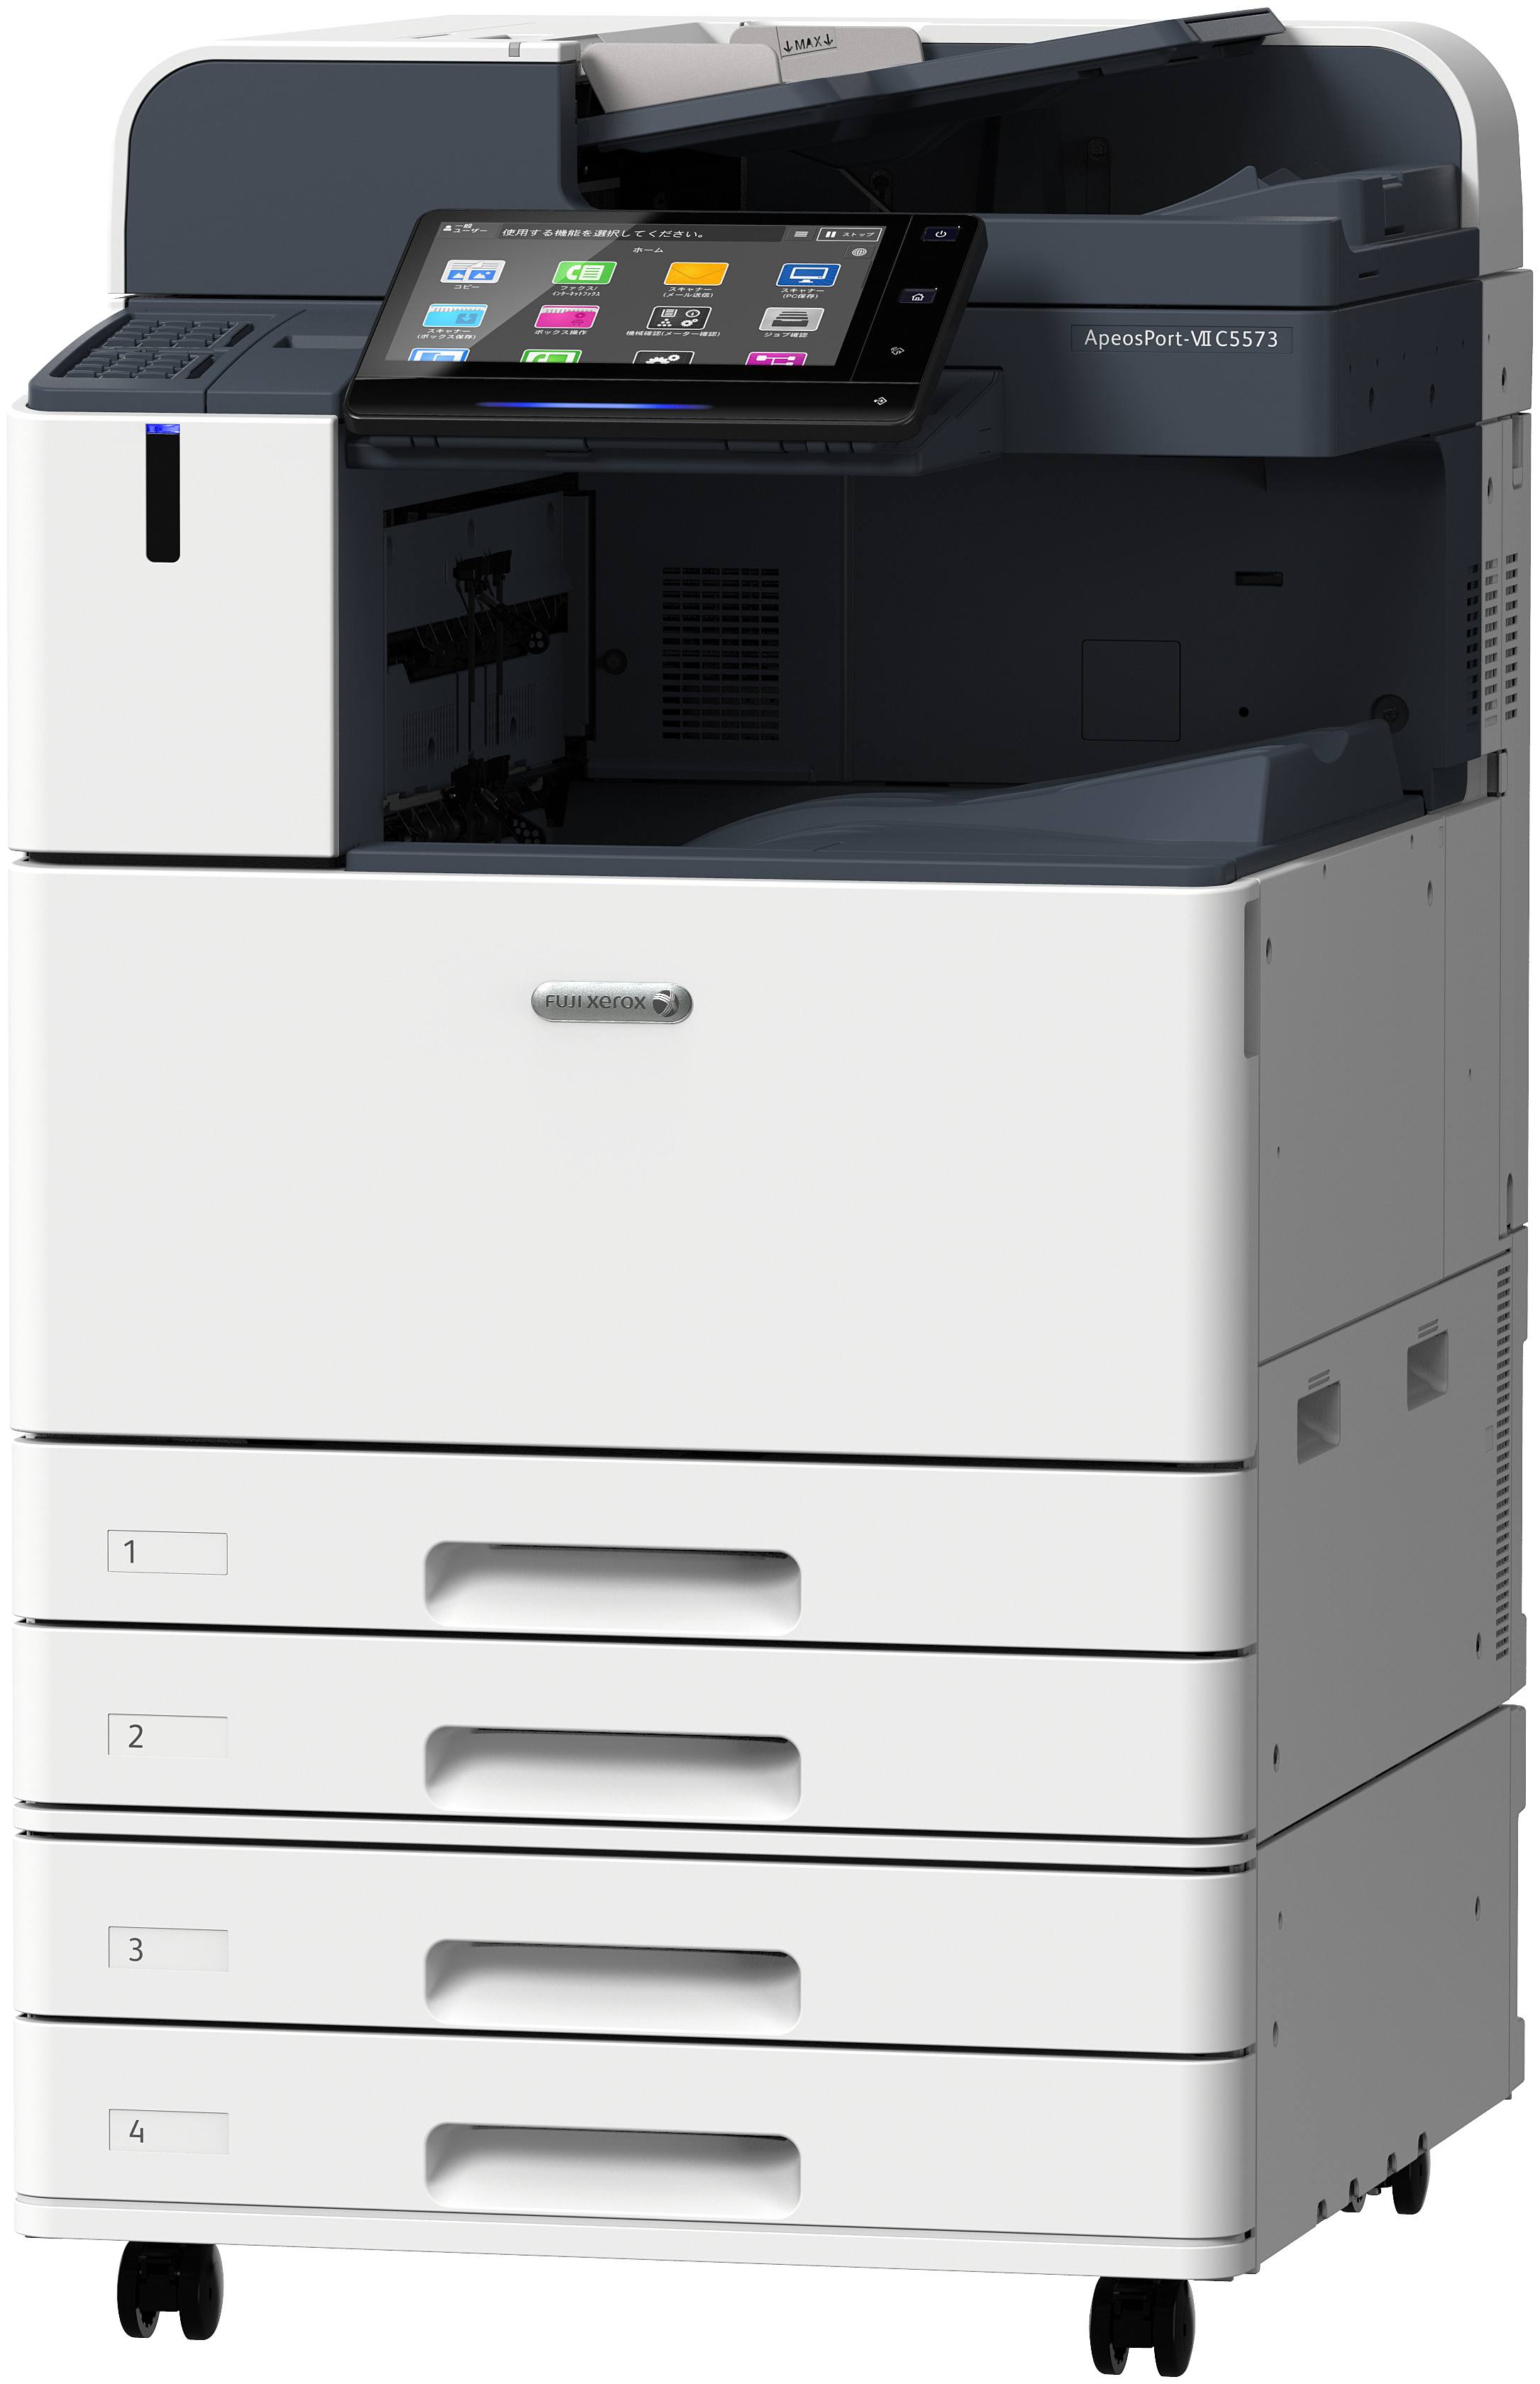 Fuji Xerox DocuCentre-VII Series